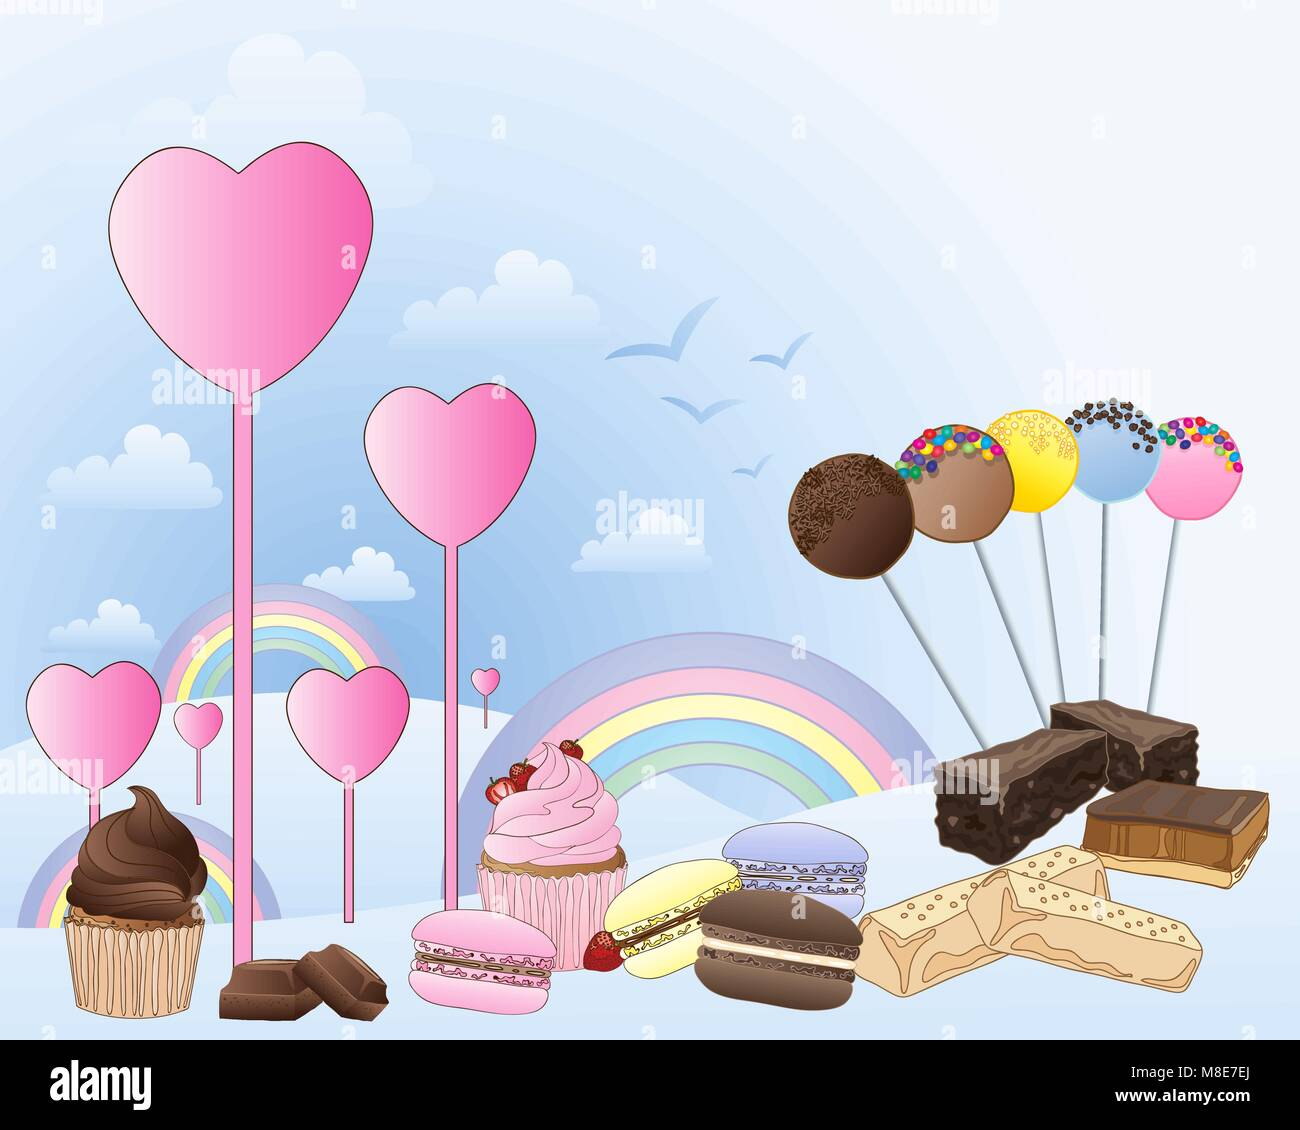 a vector illustration in eps 10 format of a fantasy land of confectionery with hearts rainbows and clouds with a - Stock Vector